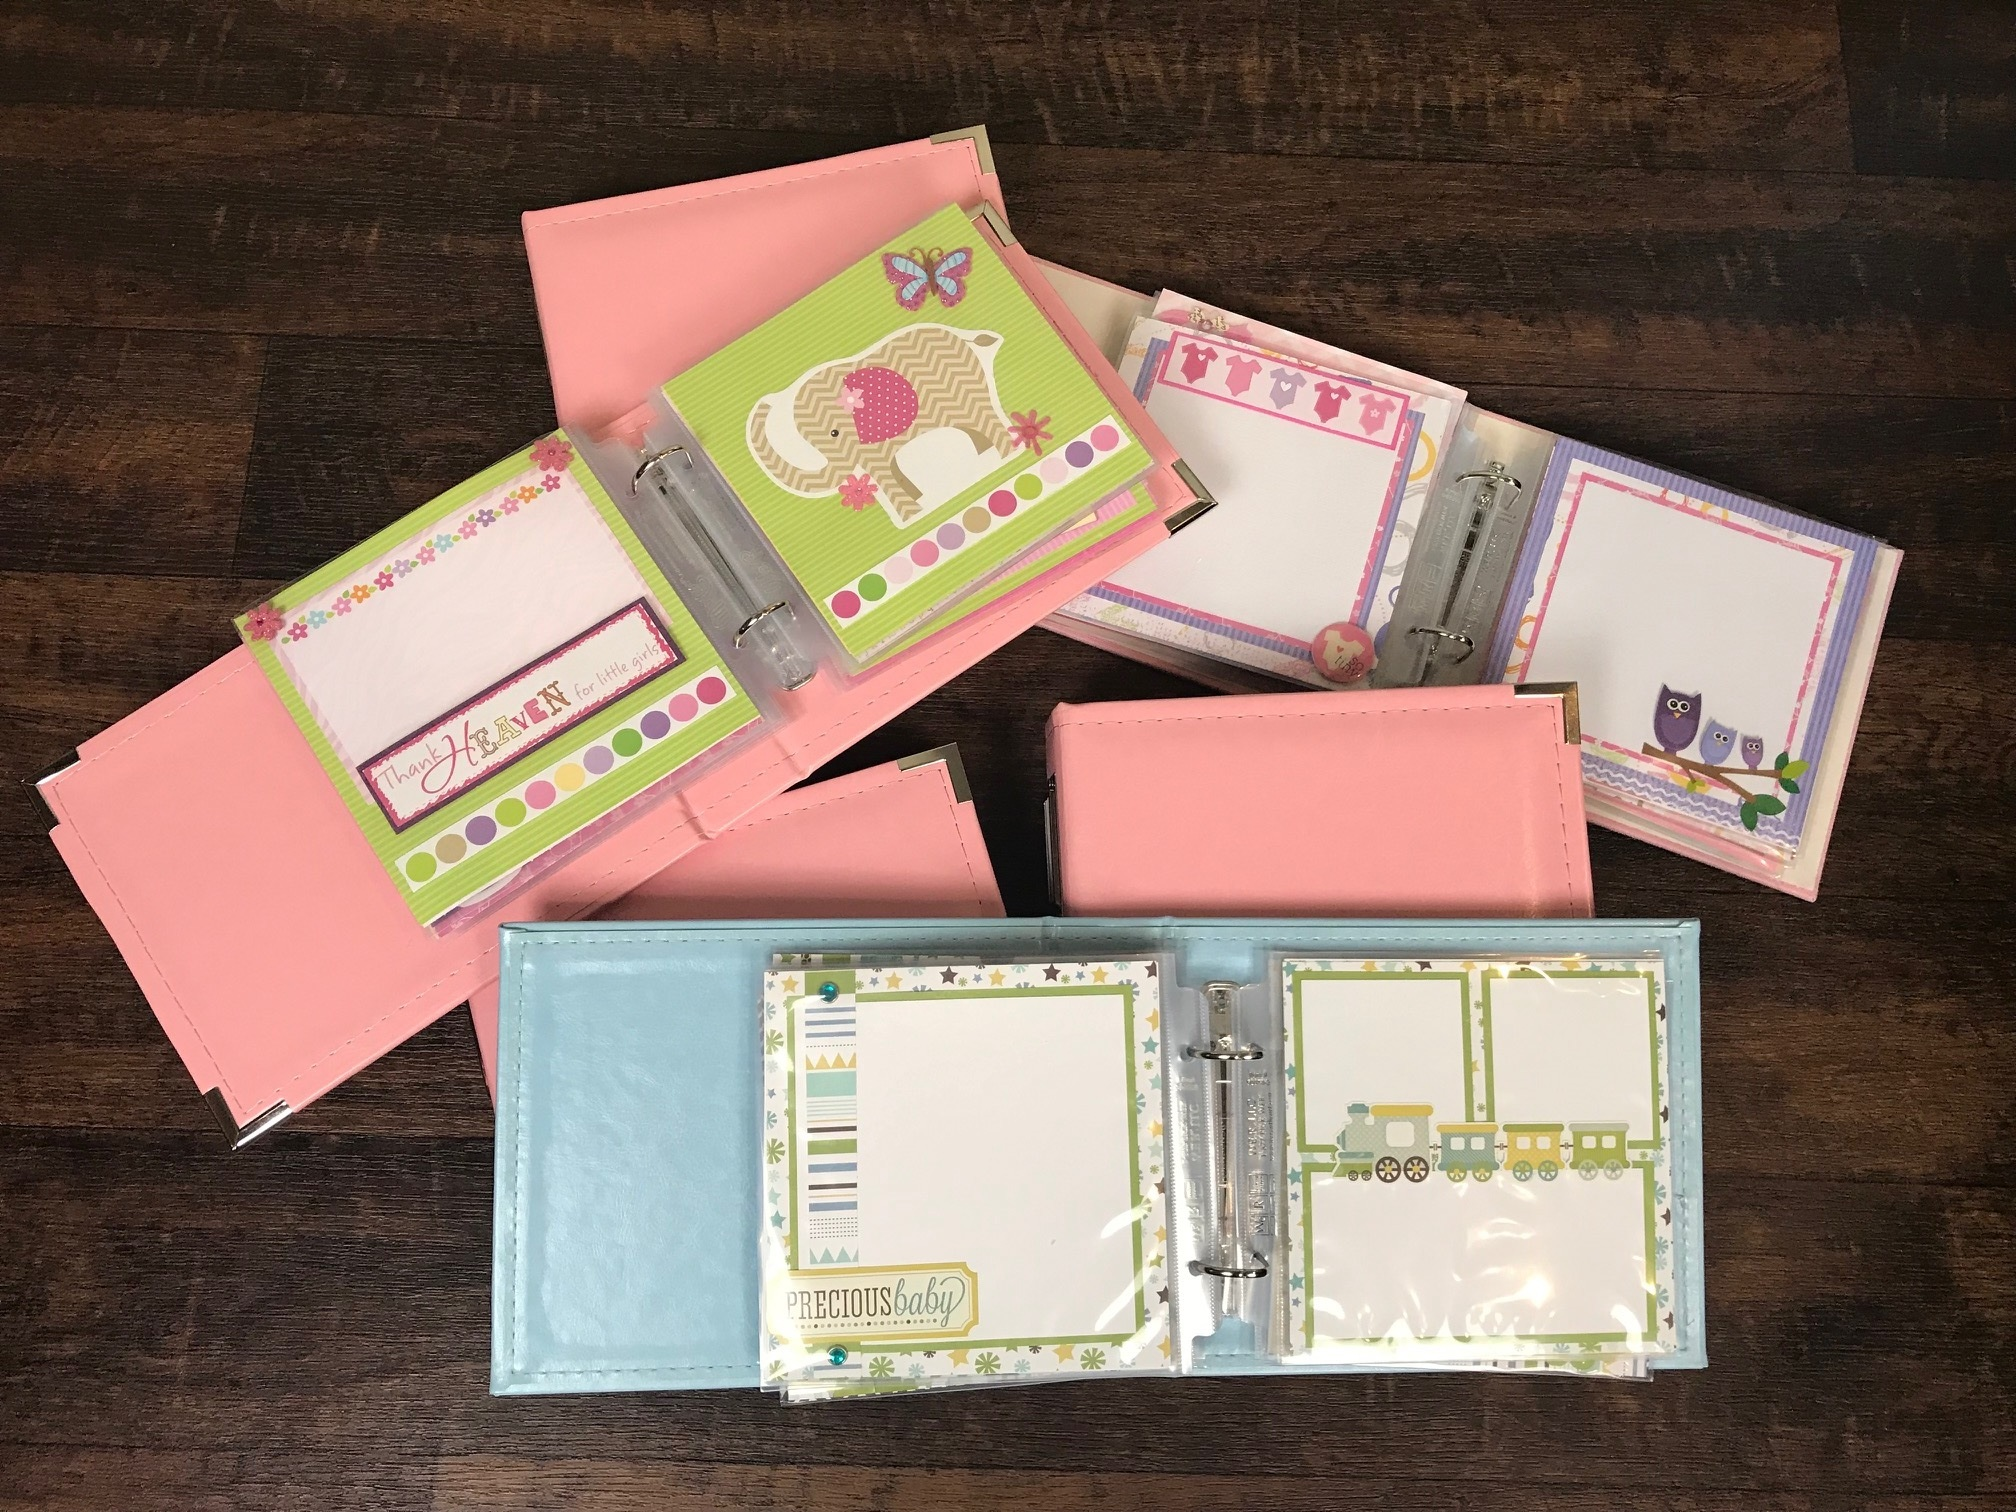 "6"" by 6"" - Small and cute! These 6x6 binders come with 20 ready made pages! Just add your pictures to have a complete scrapbook to document those important life milestones. All pages come with a high quality binder for a complete book!"